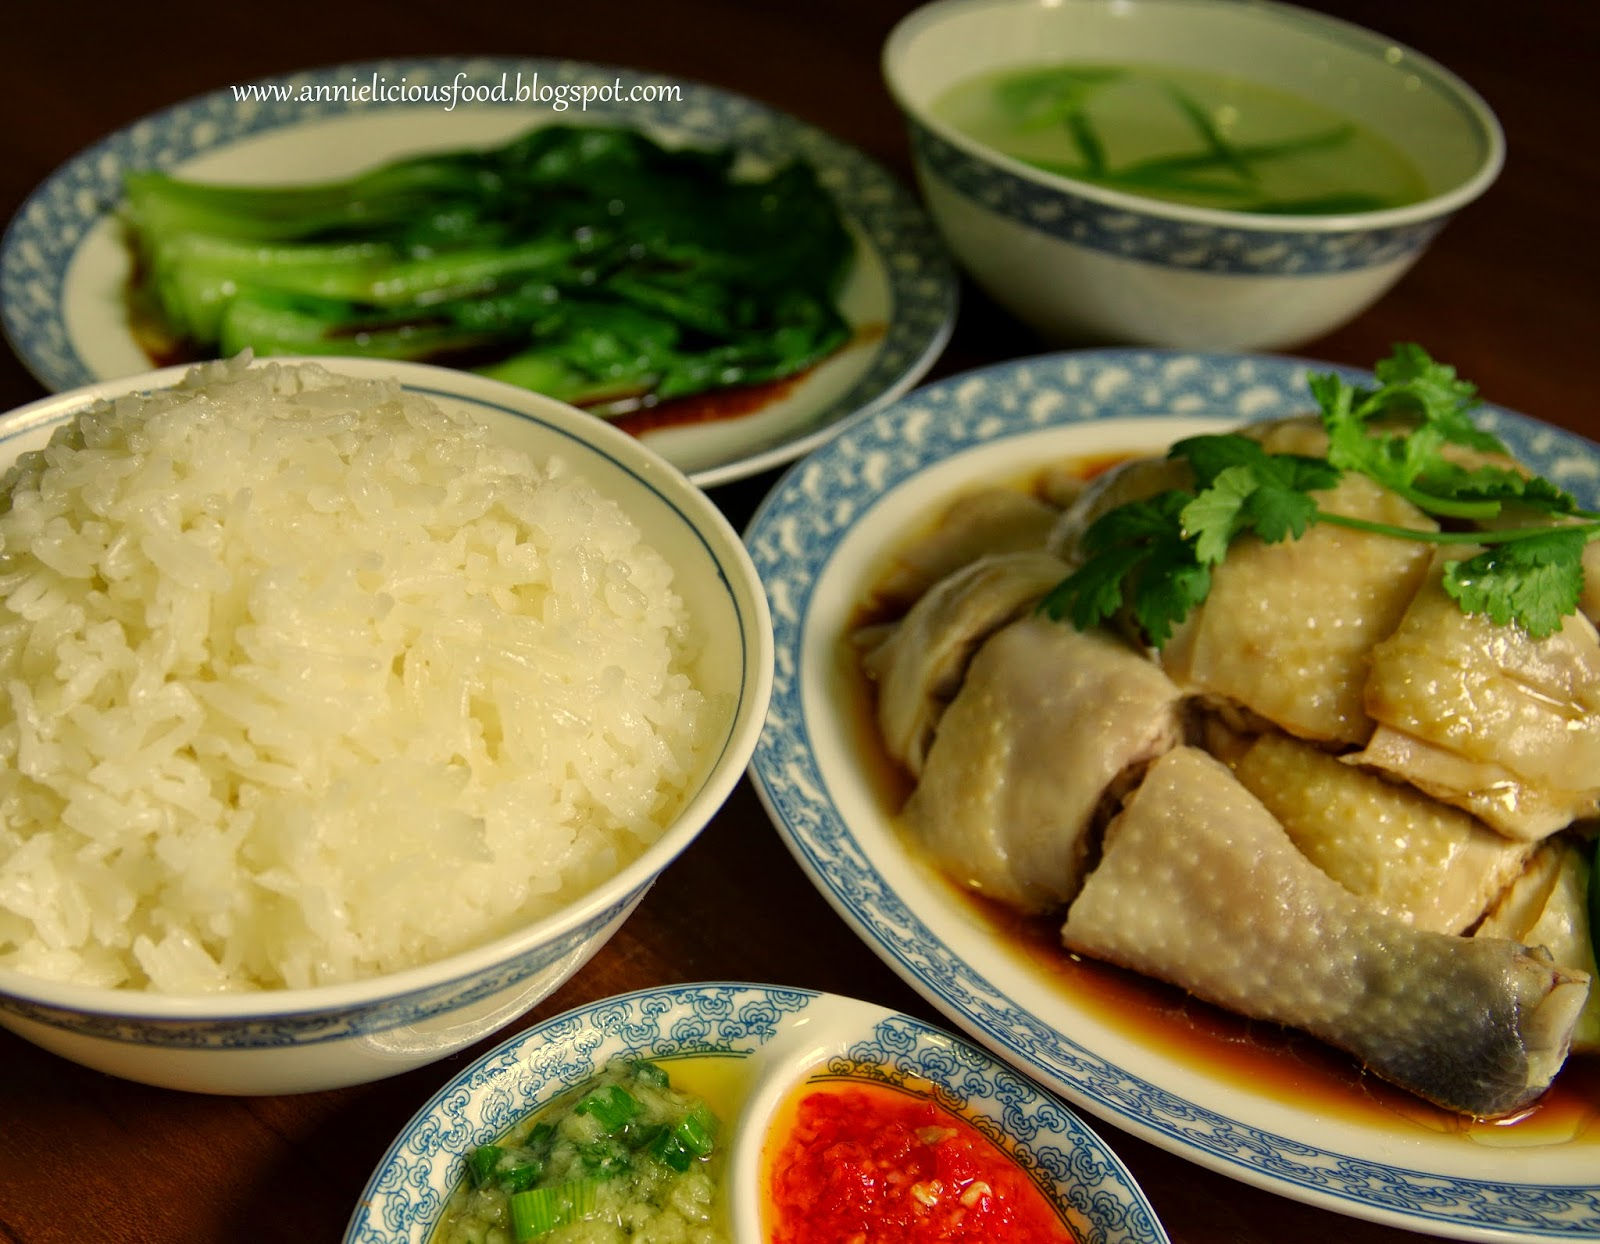 Annielicious food hainanese chicken rice aff annielicious food hainanese chicken rice aff singapore 1 forumfinder Choice Image